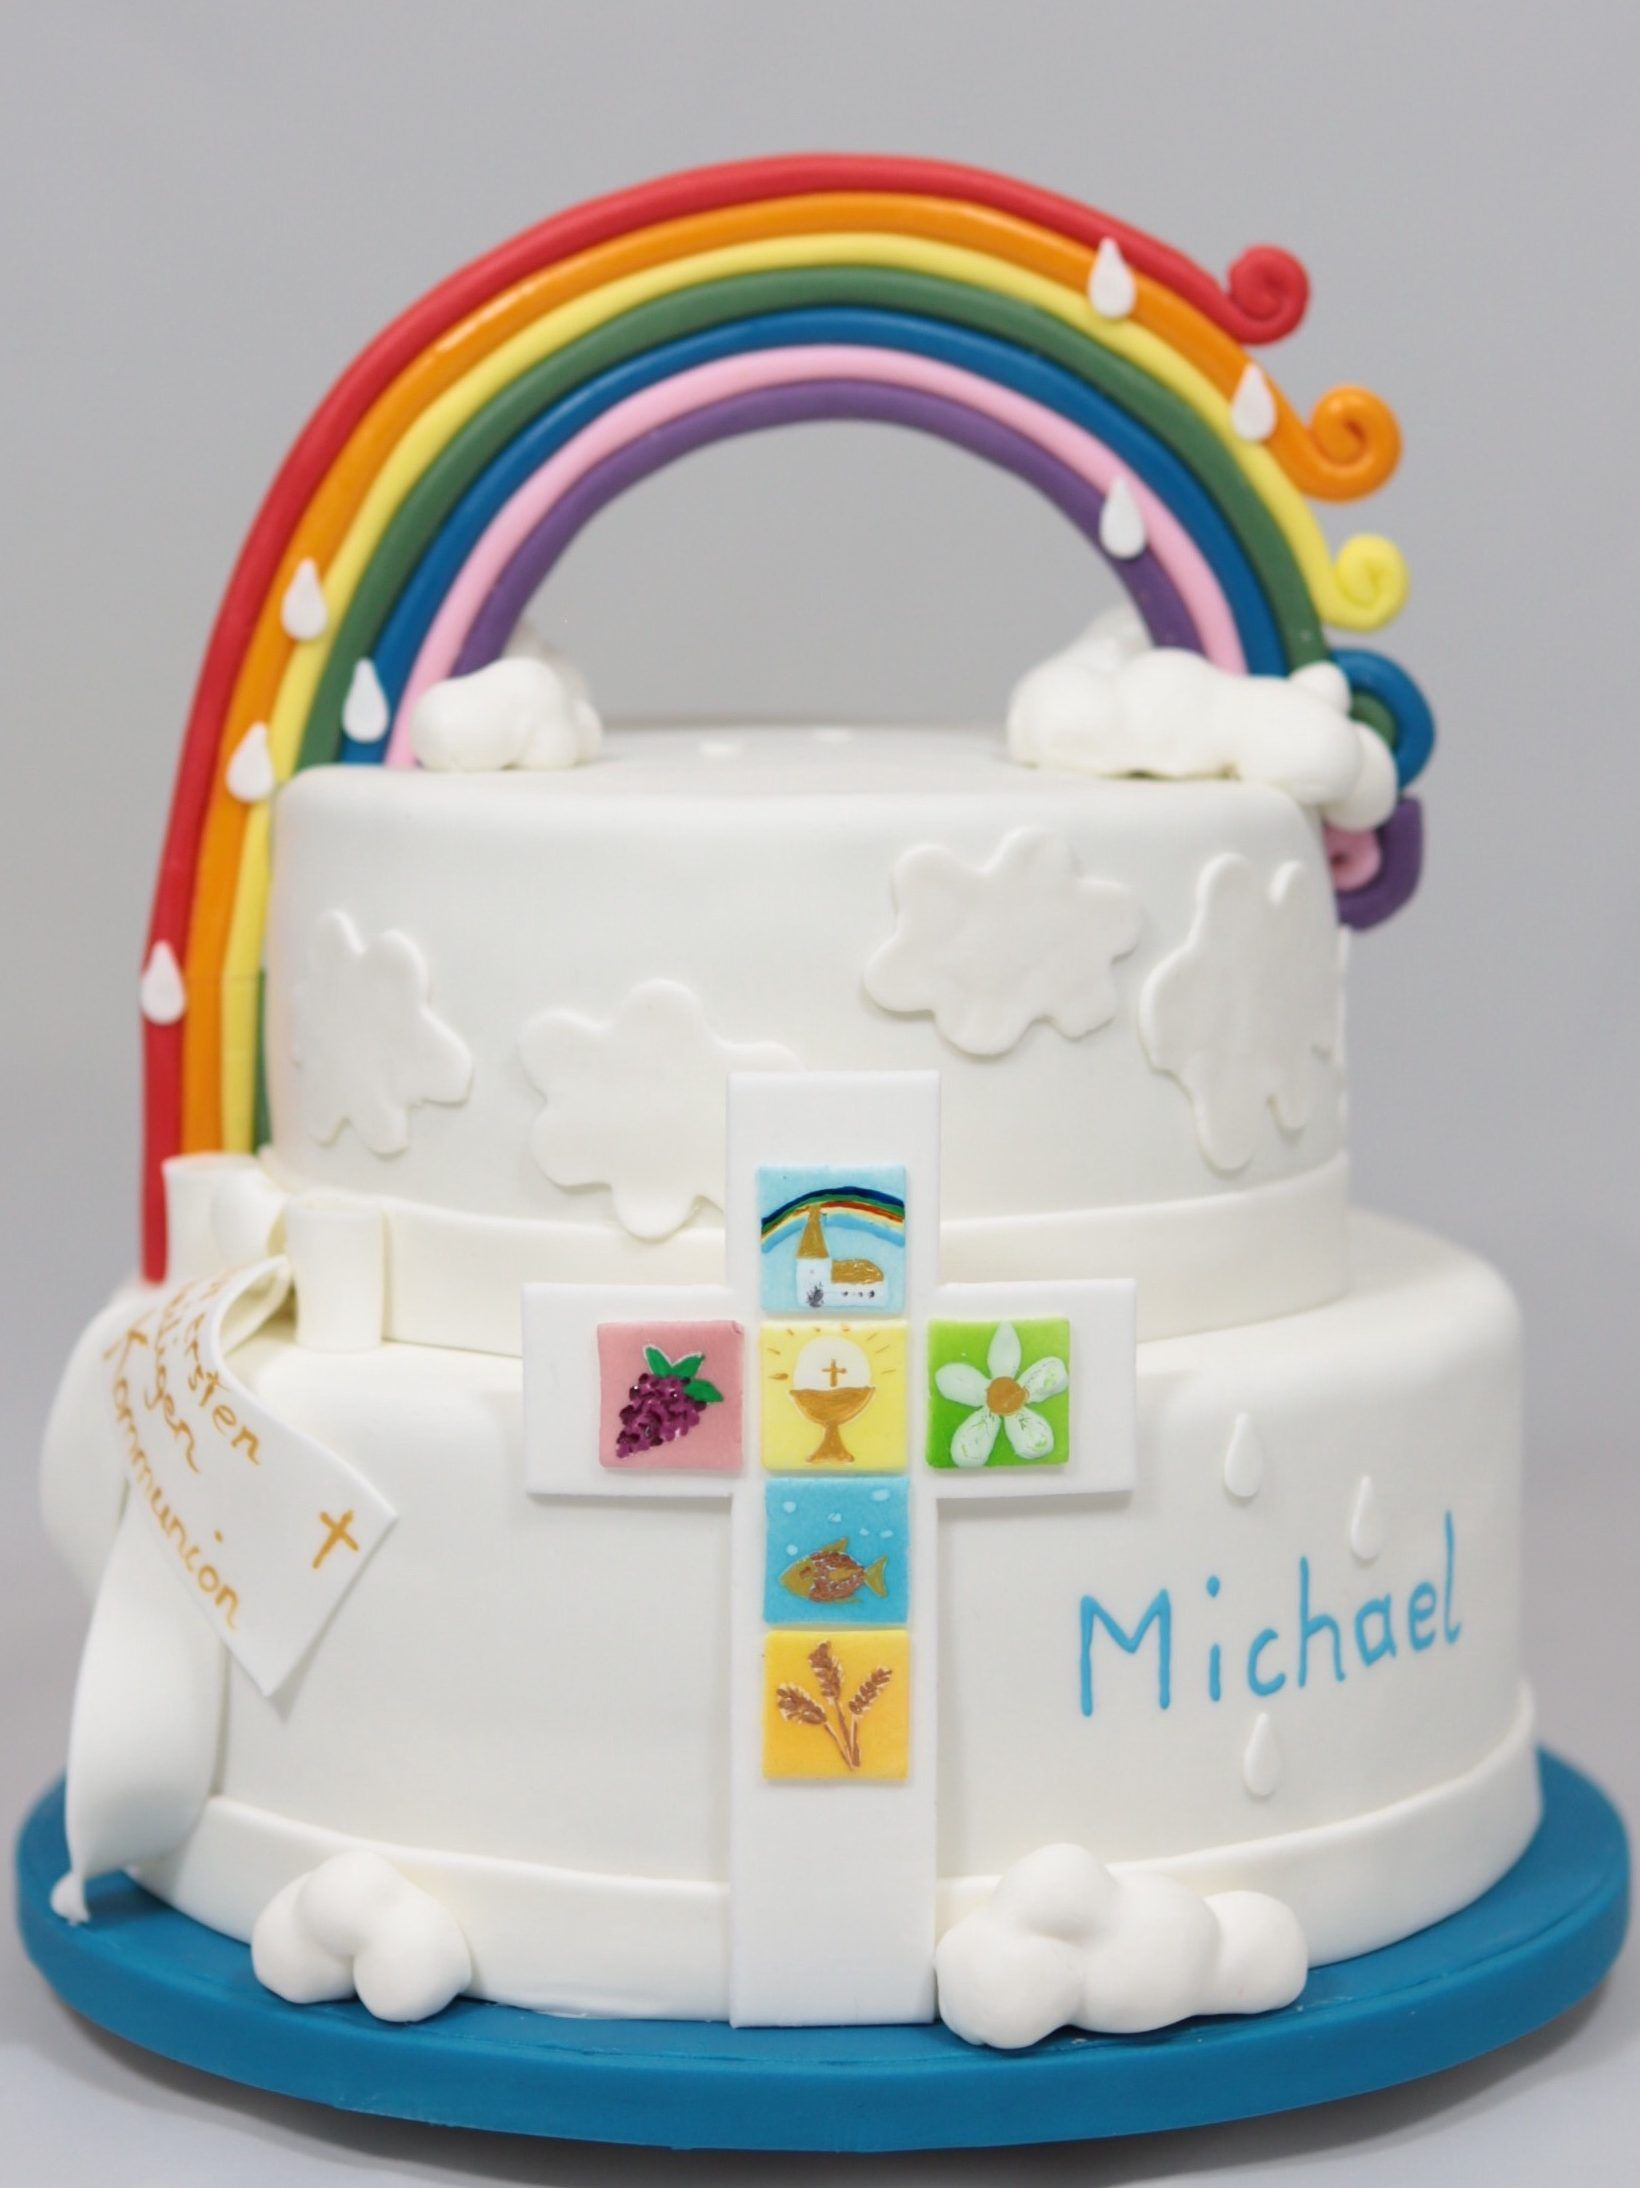 regenbogen rainbow torte cake first communion erstkommunion torten zur erstkommunion in 2019. Black Bedroom Furniture Sets. Home Design Ideas